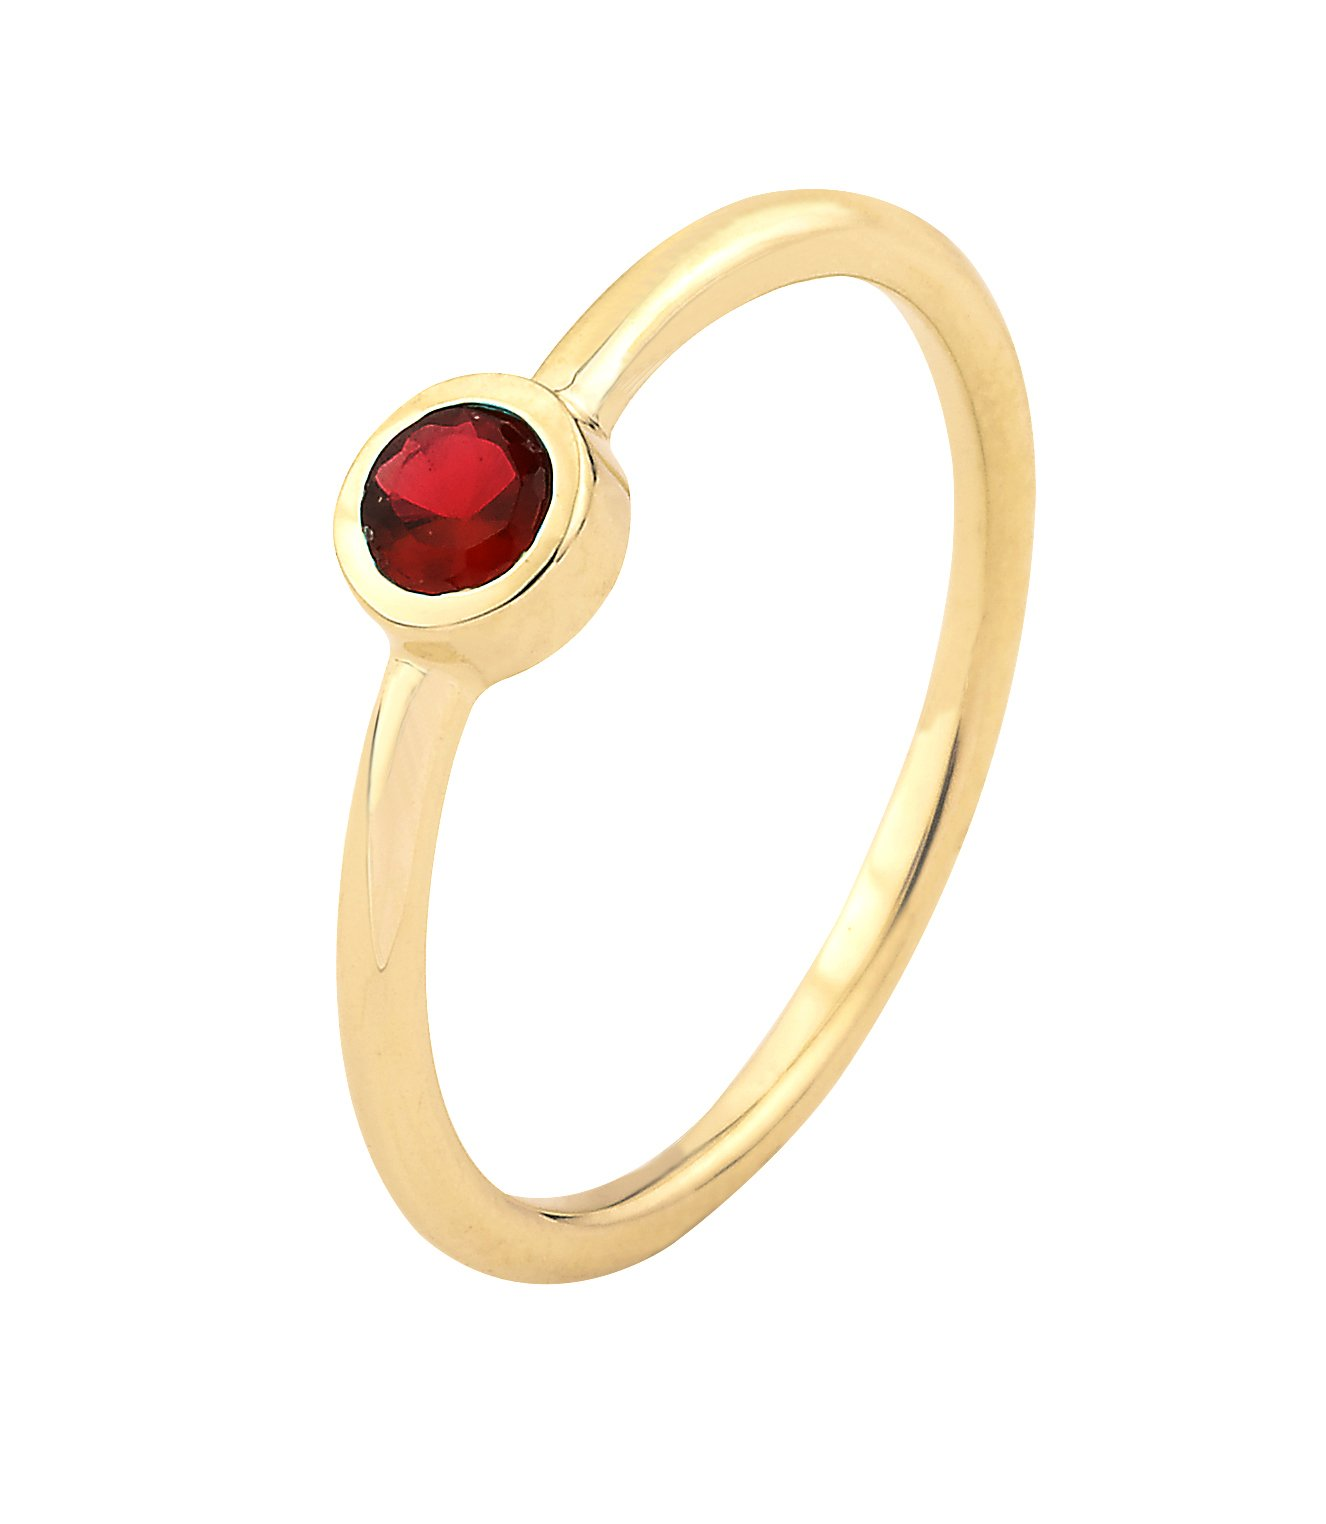 14k Yellow Gold Bezel Set Red Cubic Zirconia January Birthstone Ring (7.5)